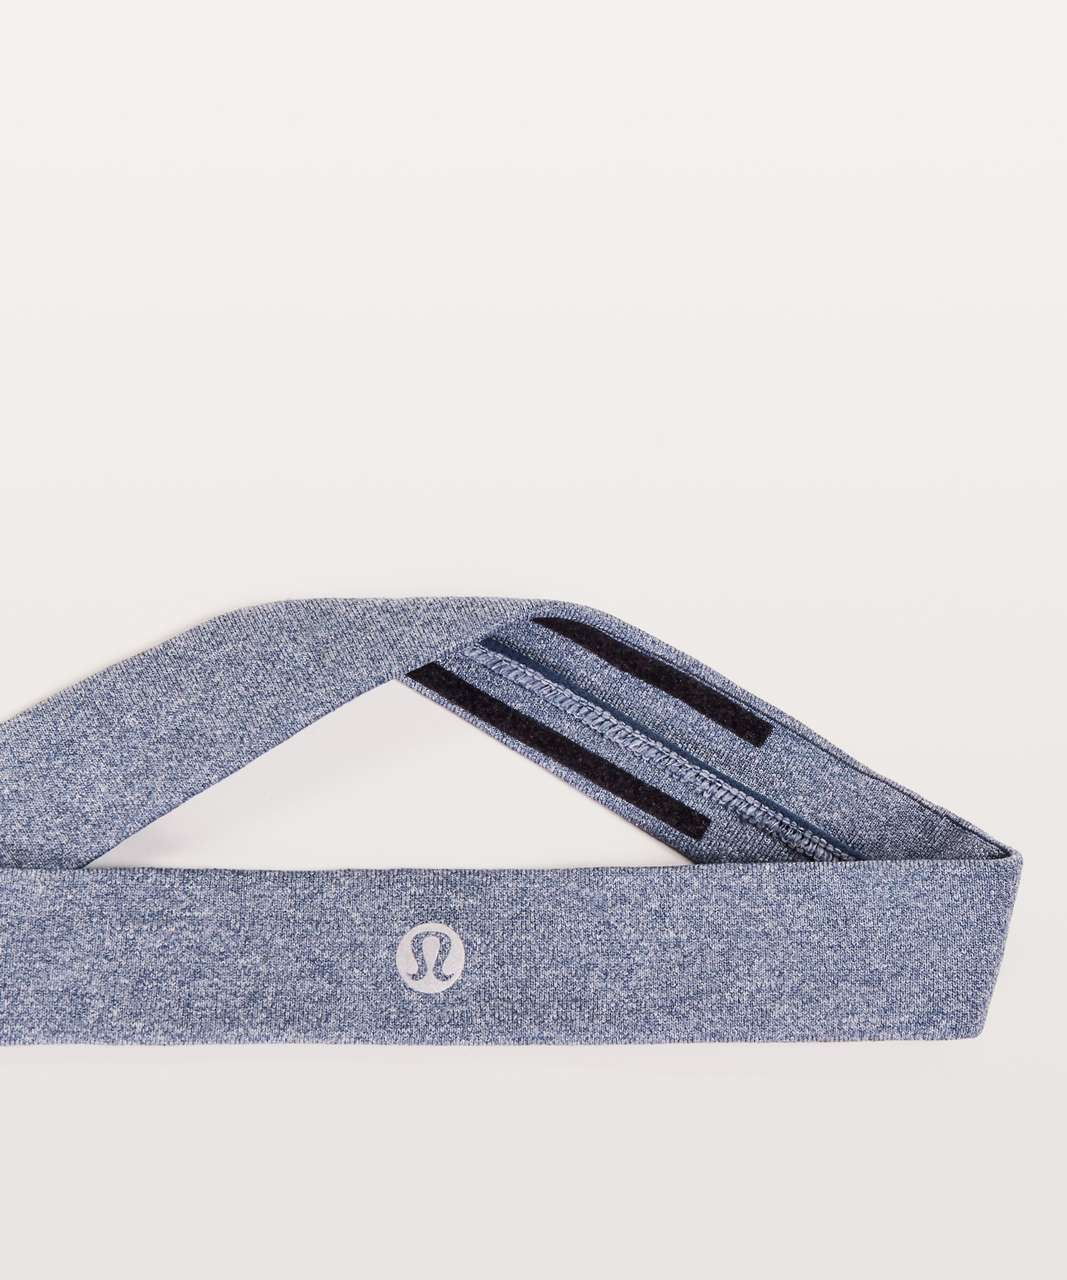 Lululemon Cardio Cross Trainer Headband - Deep Navy / White (First Release)